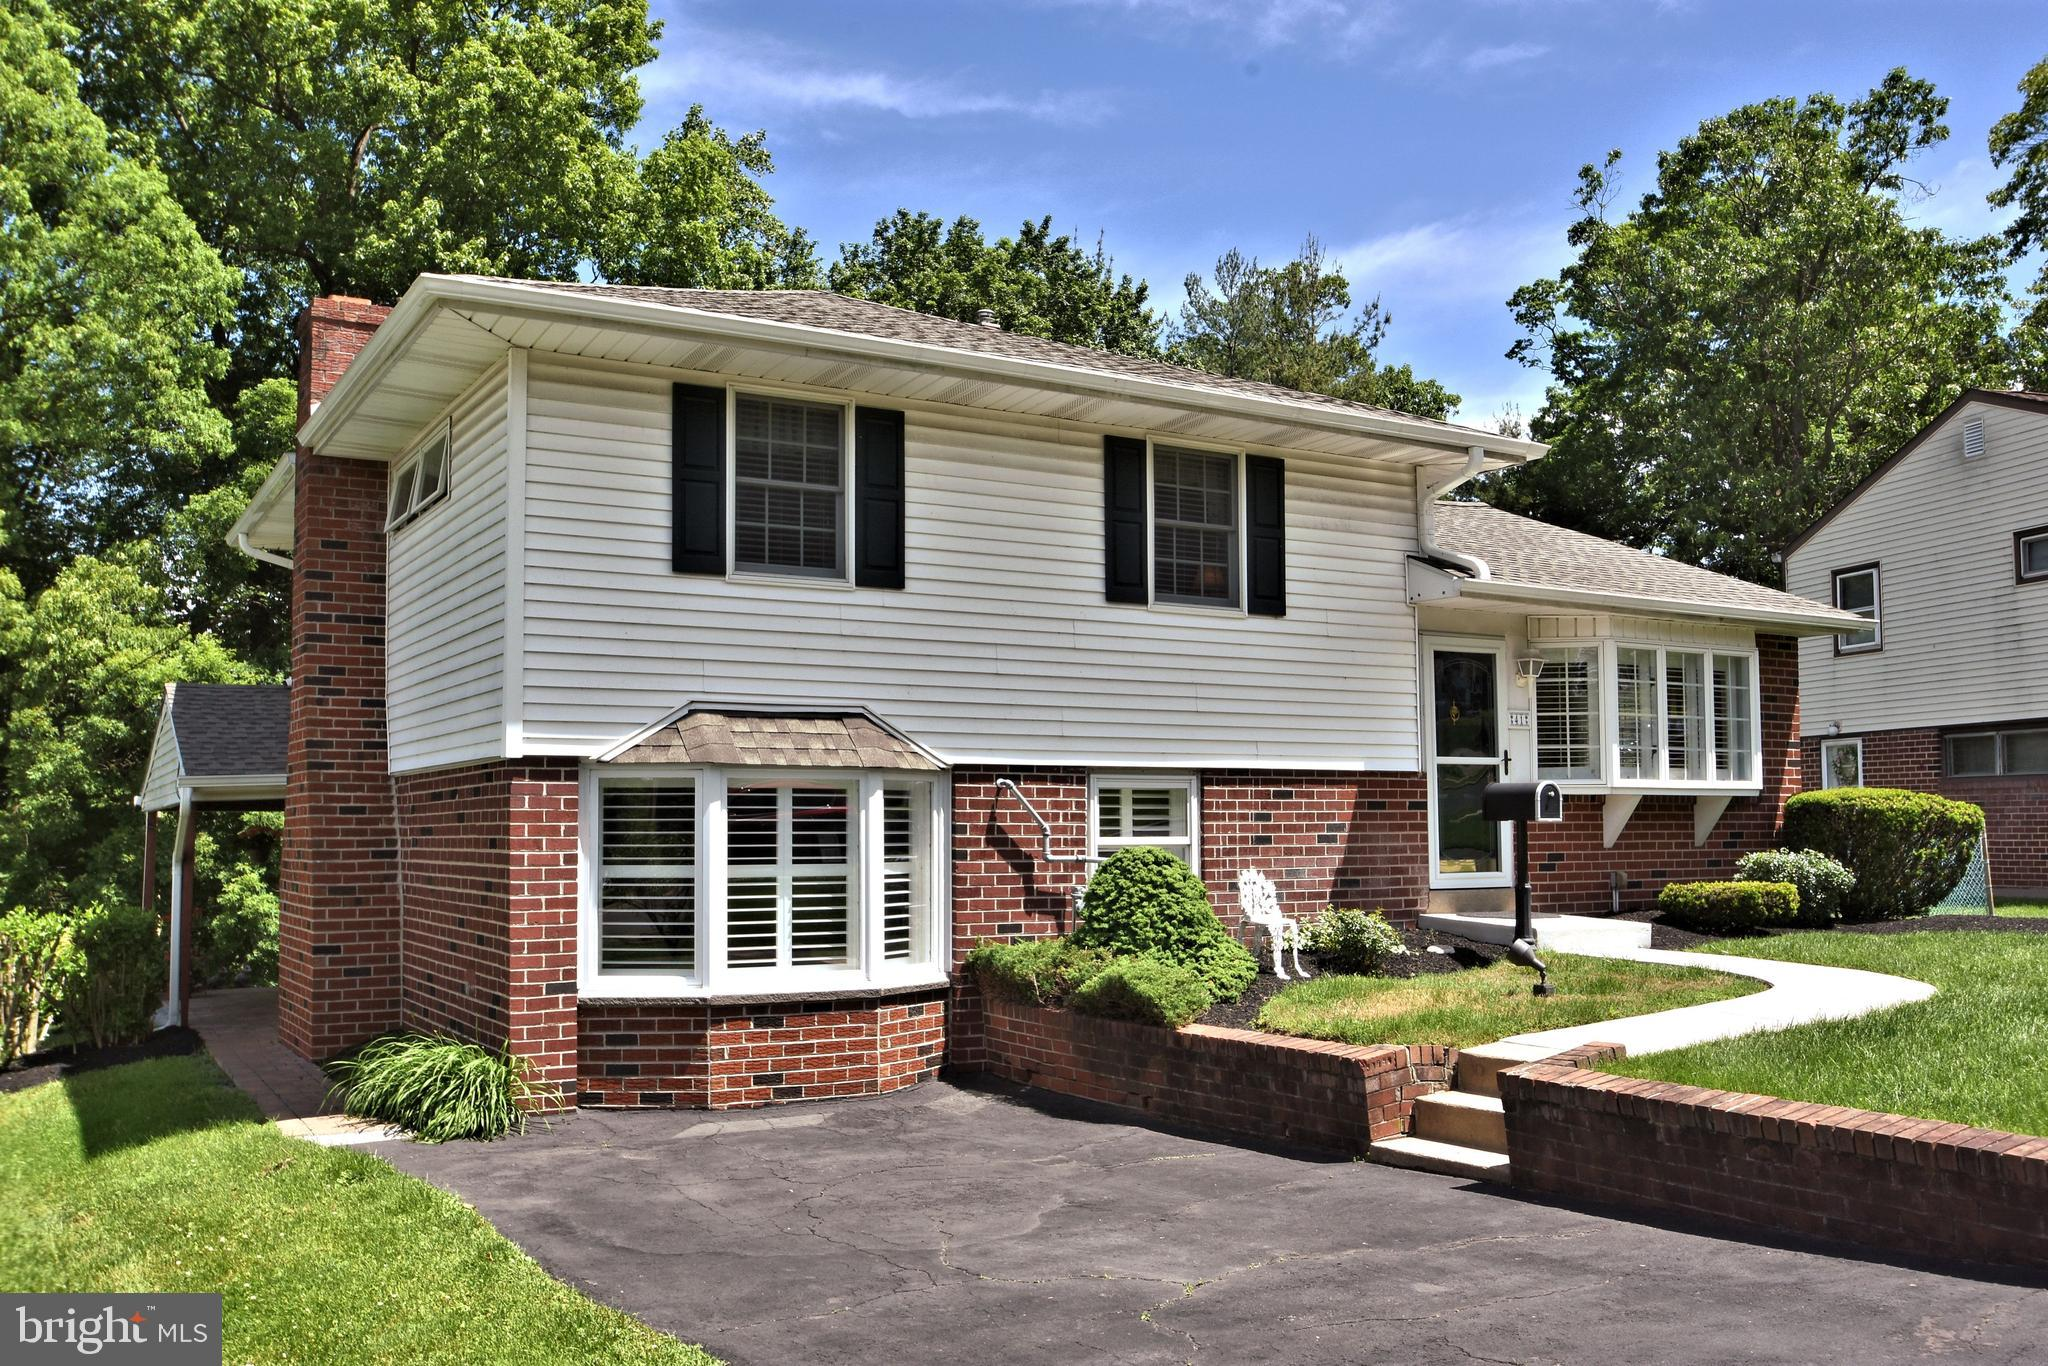 41 RUSSELL ROAD, WILLOW GROVE, PA 19090